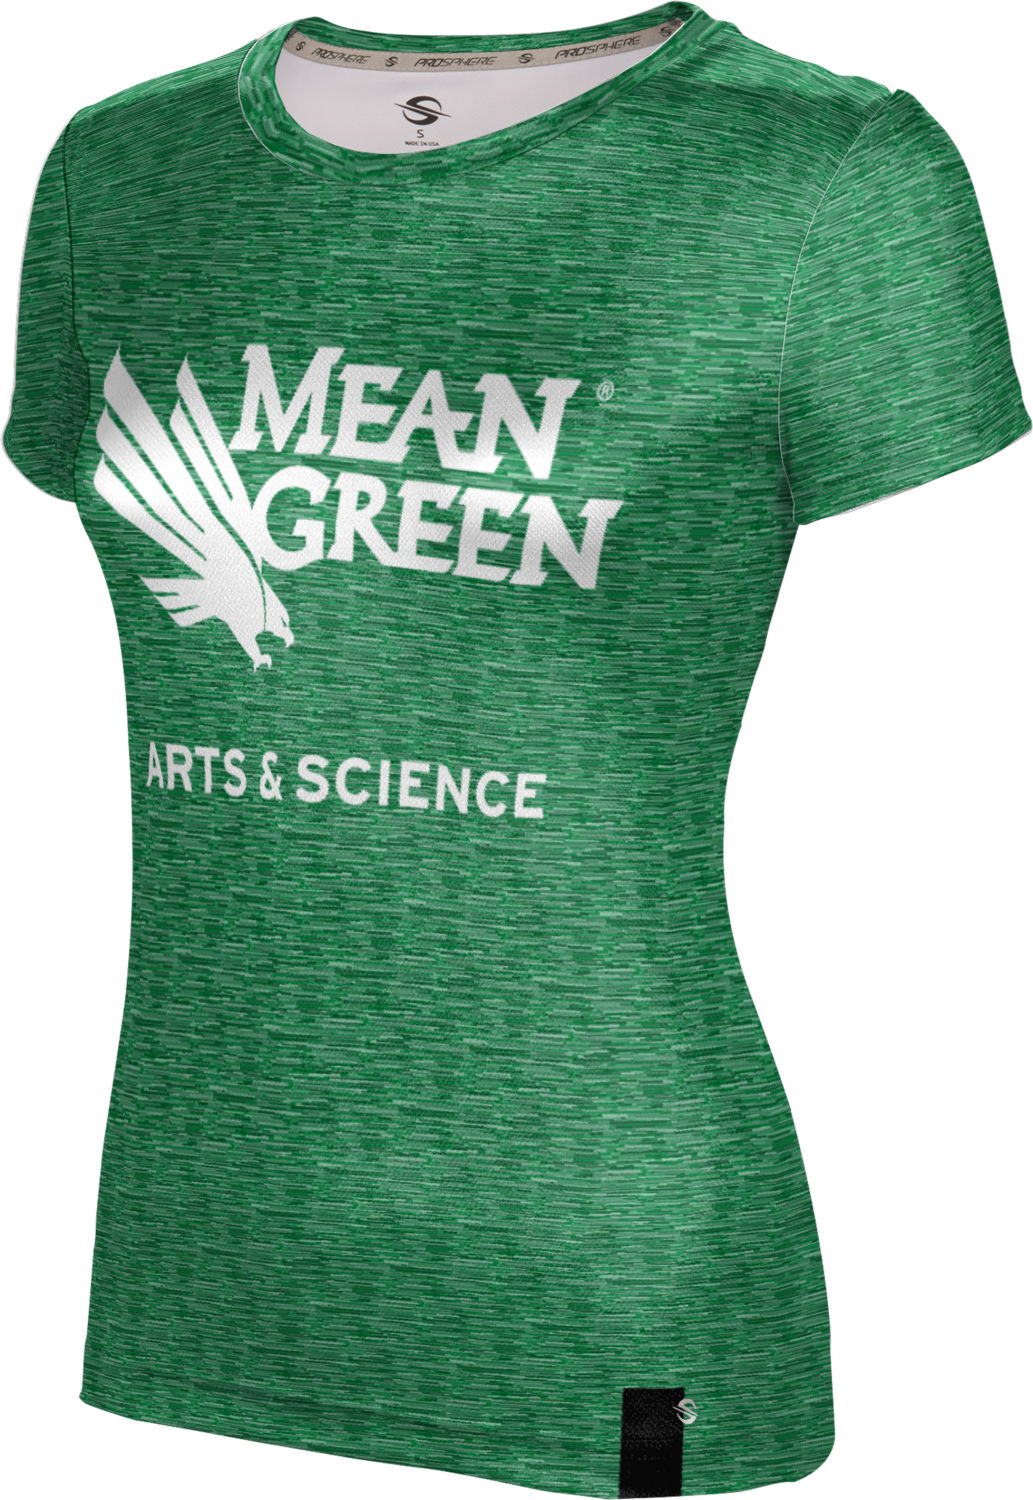 ProSphere Arts & Science Women's Short Sleeve Tee